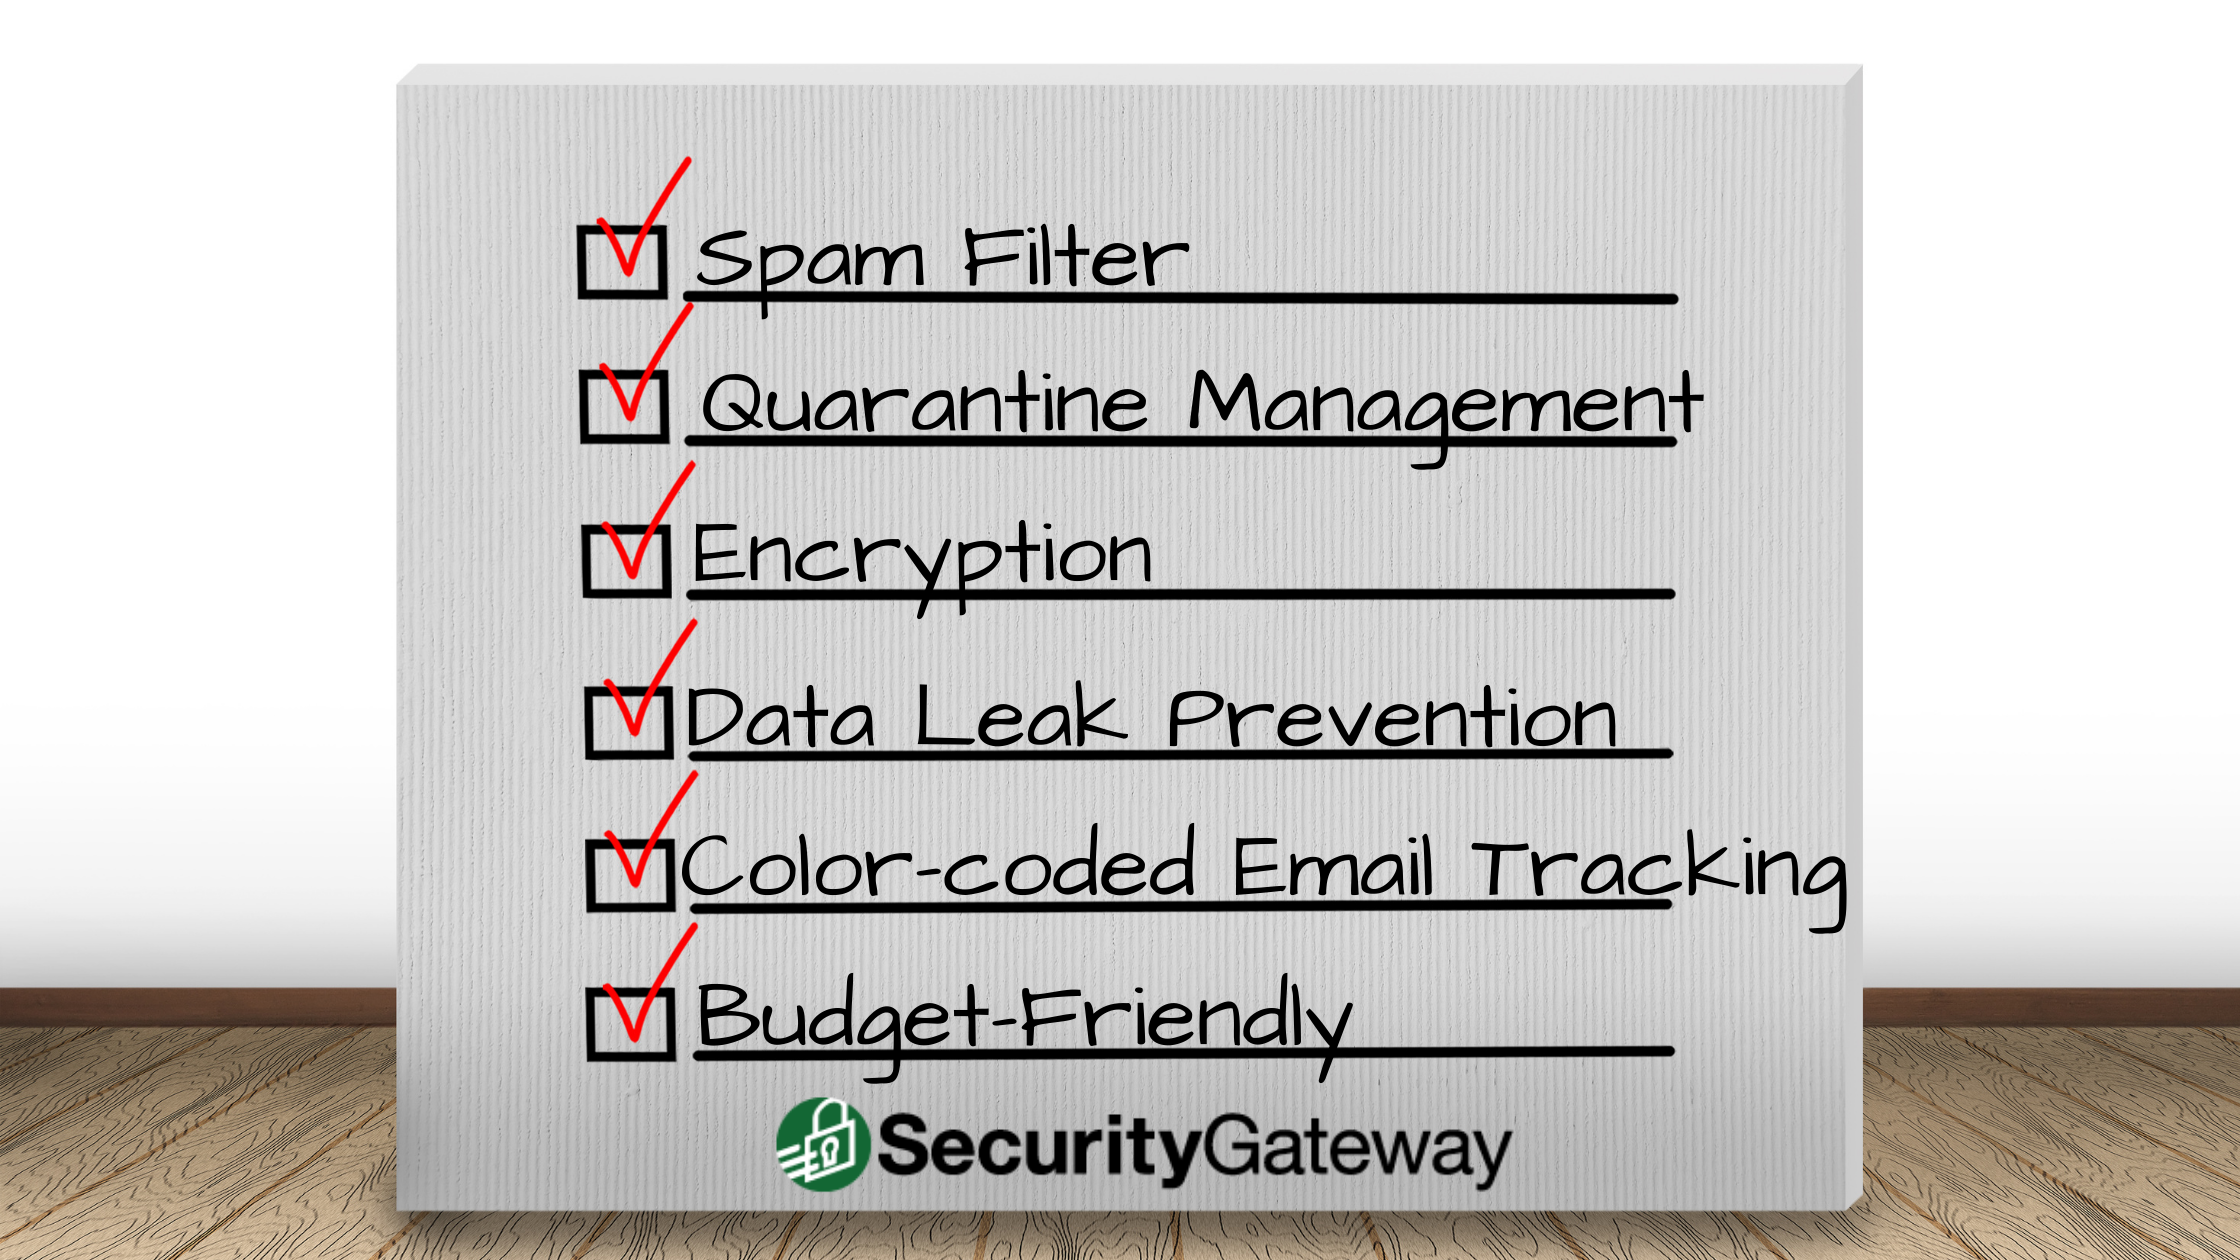 Security Gateway for Email Features - Spam Filter, Quarantine Management, Encryption, Data Leak Prevention